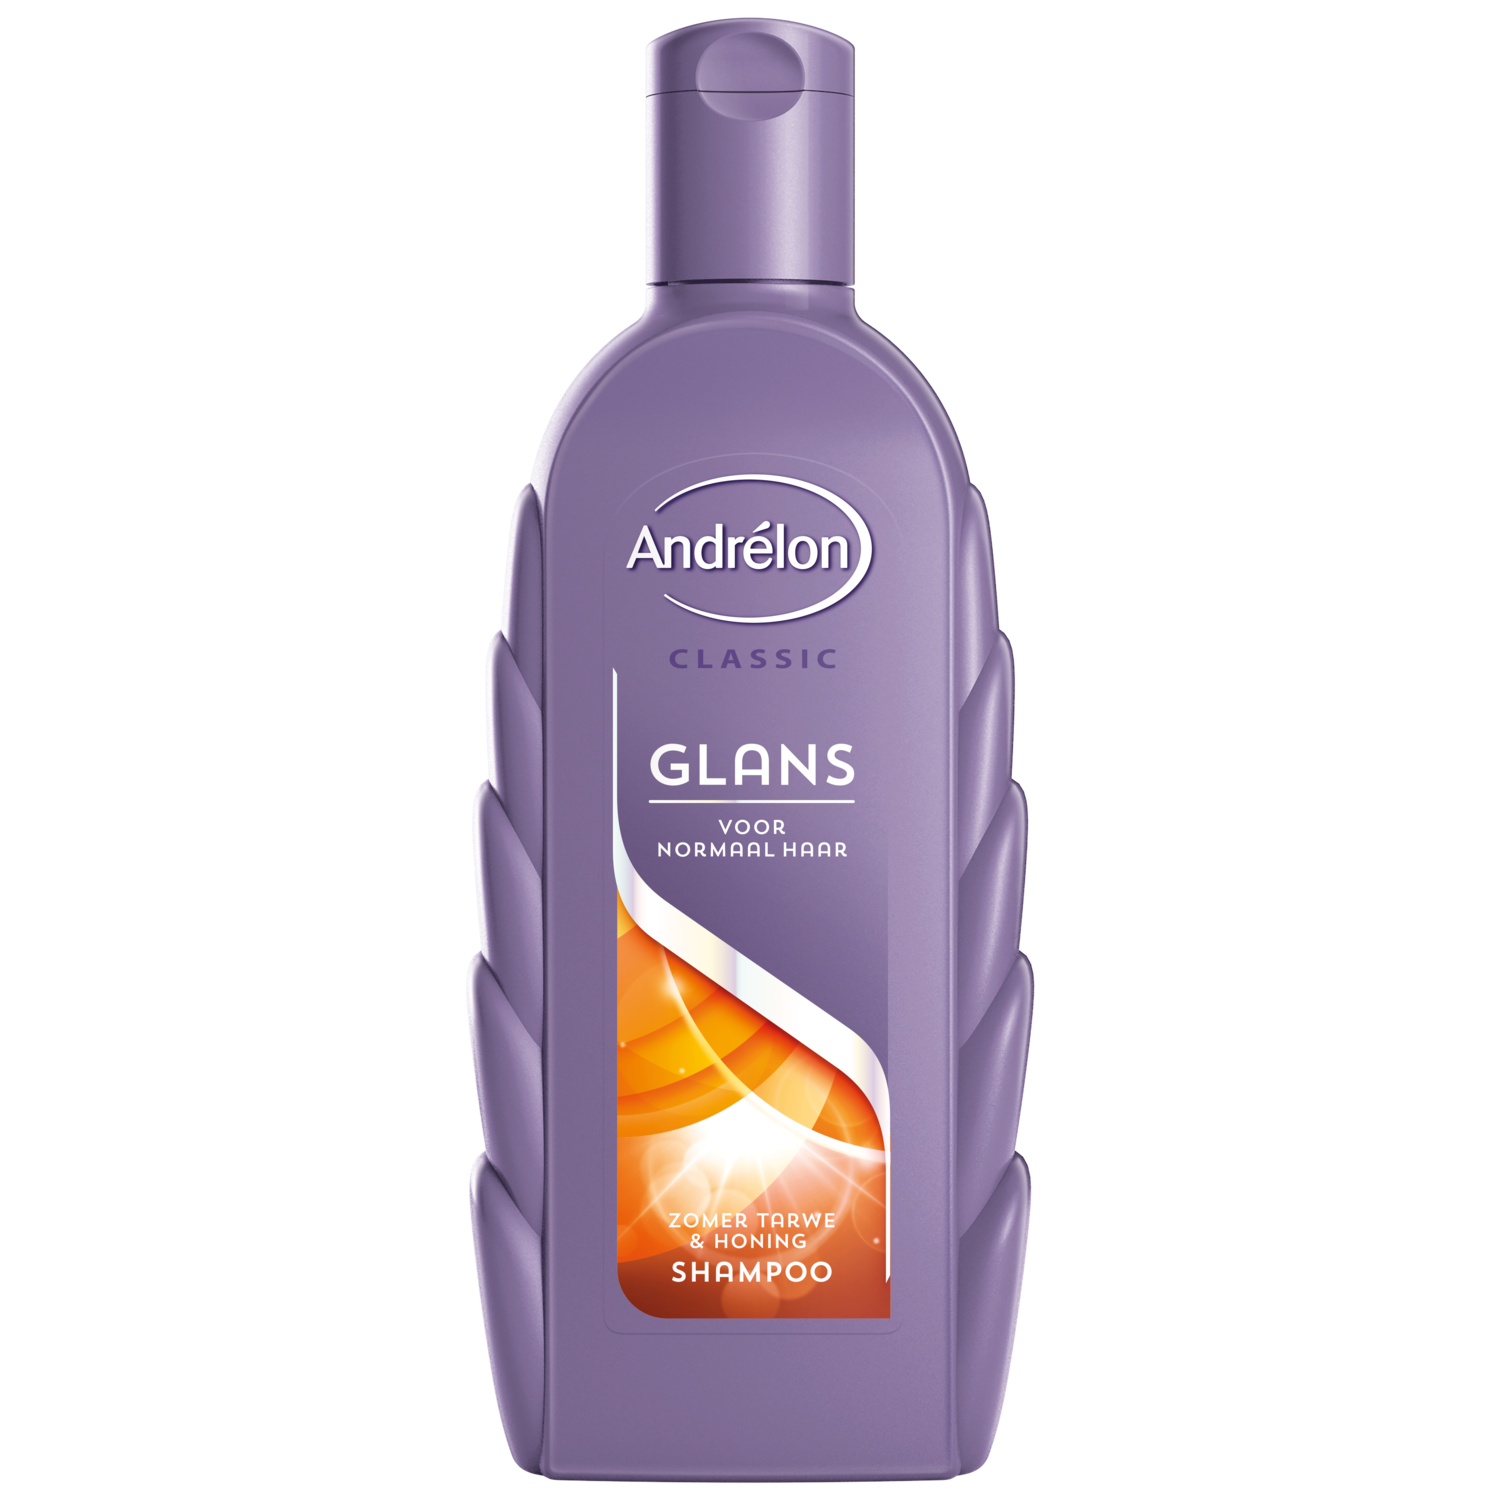 Andrelon Classic Glans SH 300ml 8710447321836